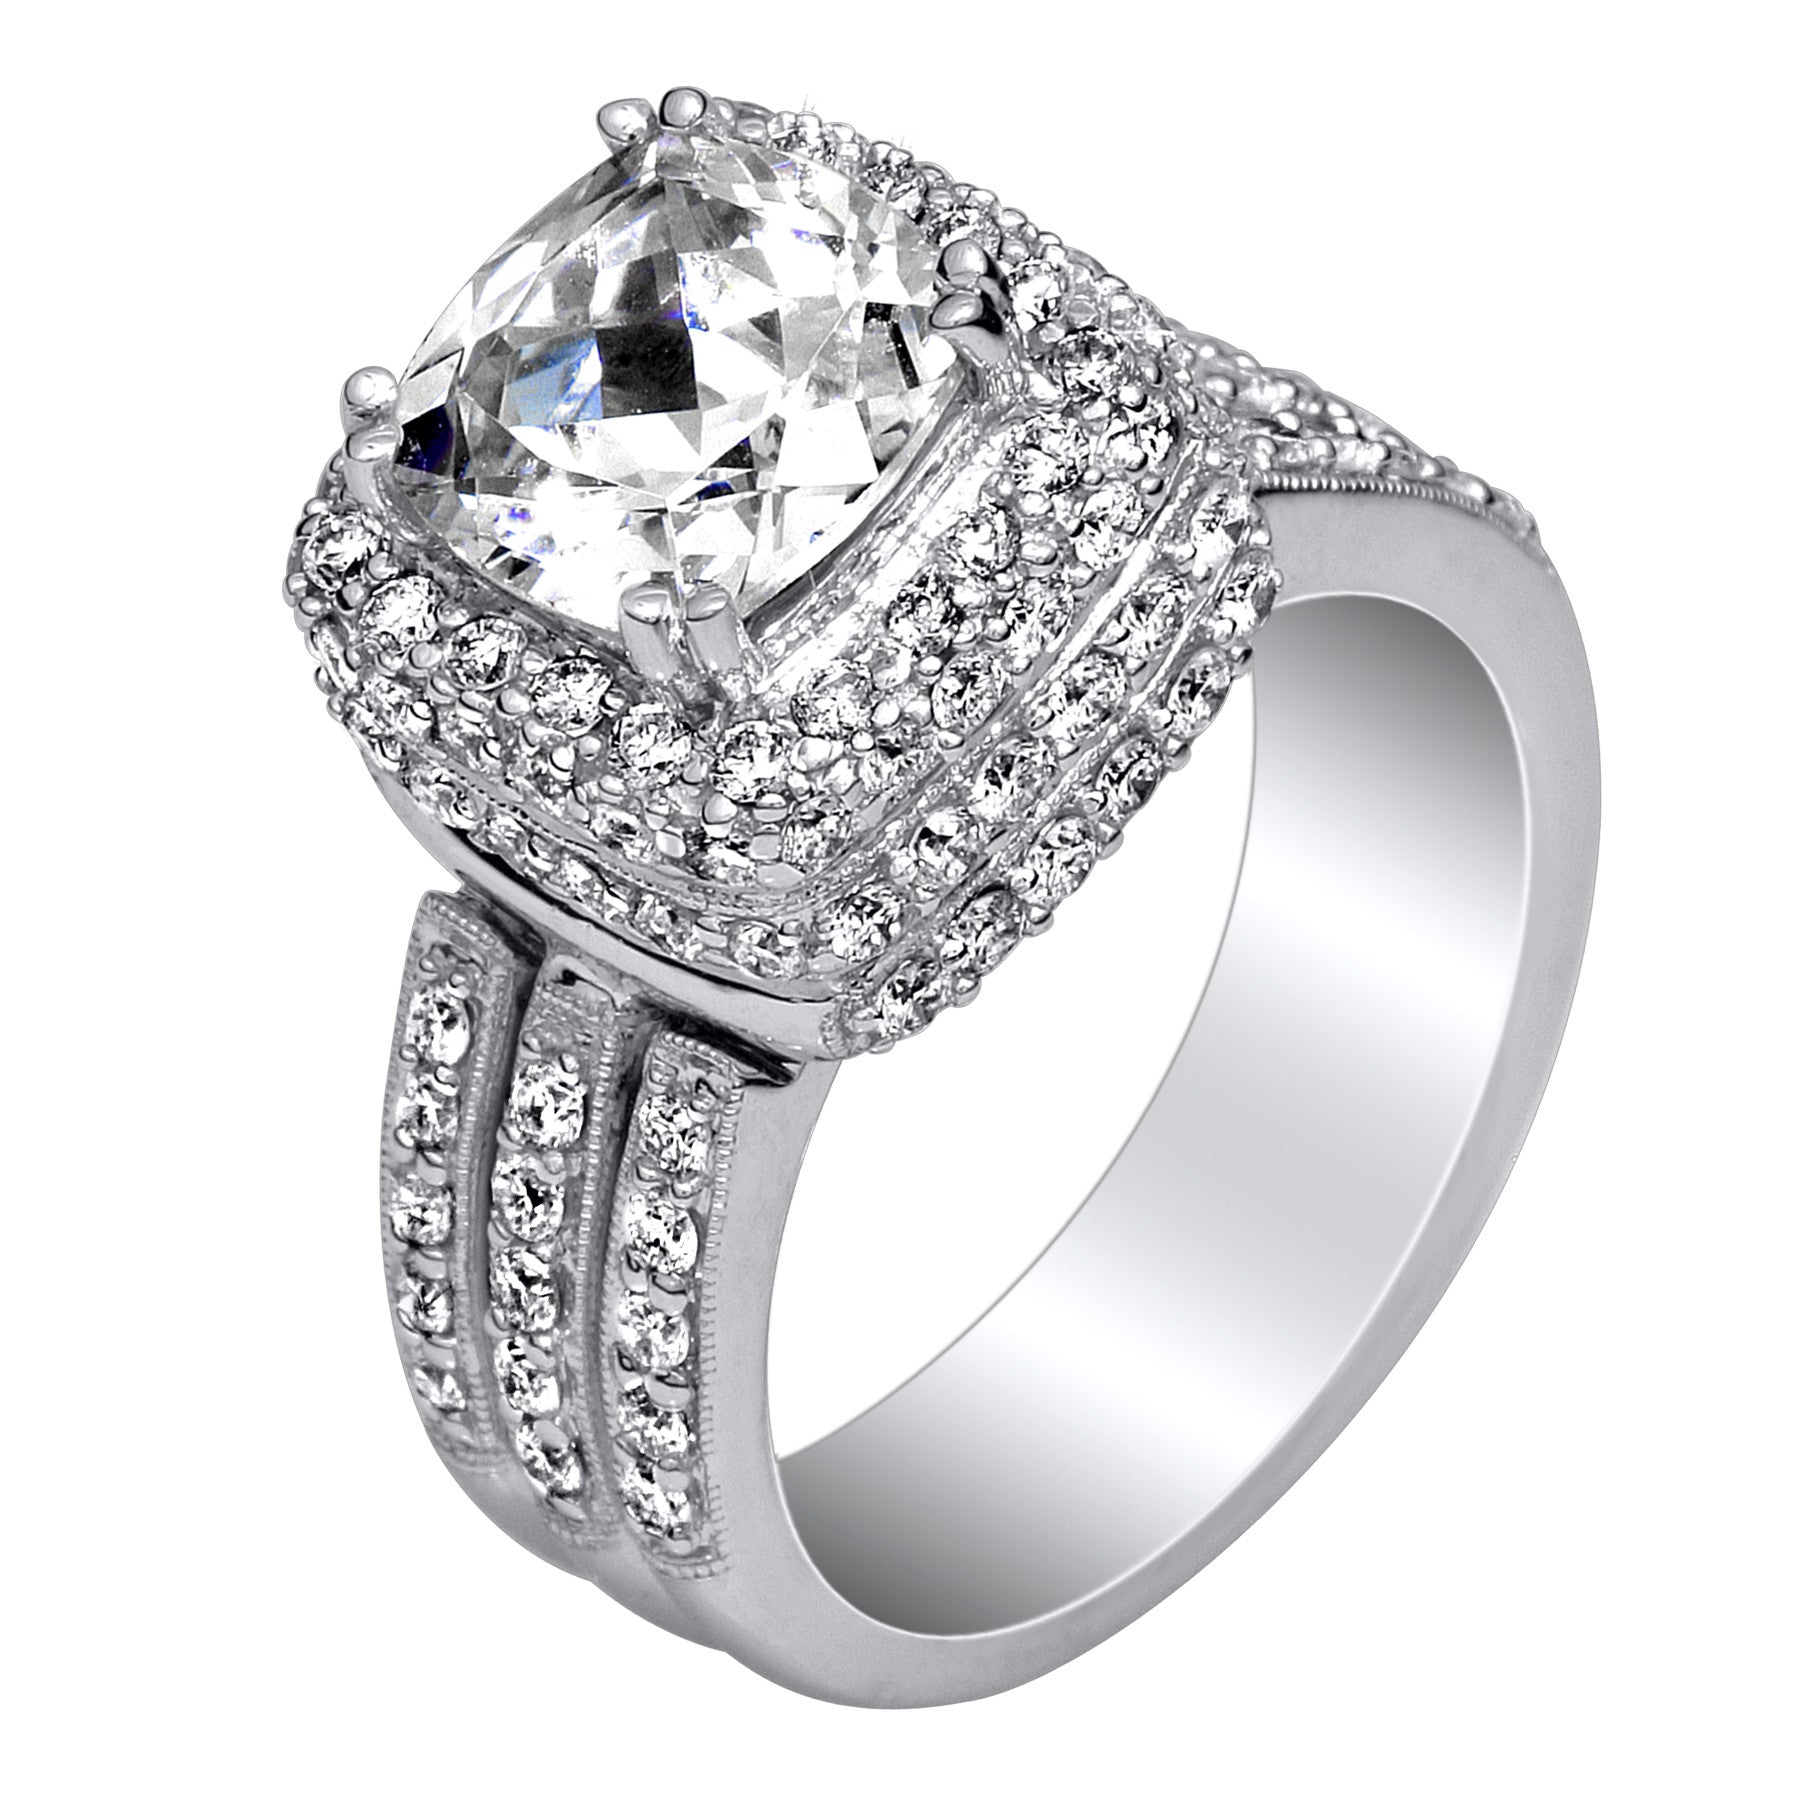 ring il from p rings diamonds royalt jewelers engagement products k mundelein bennett